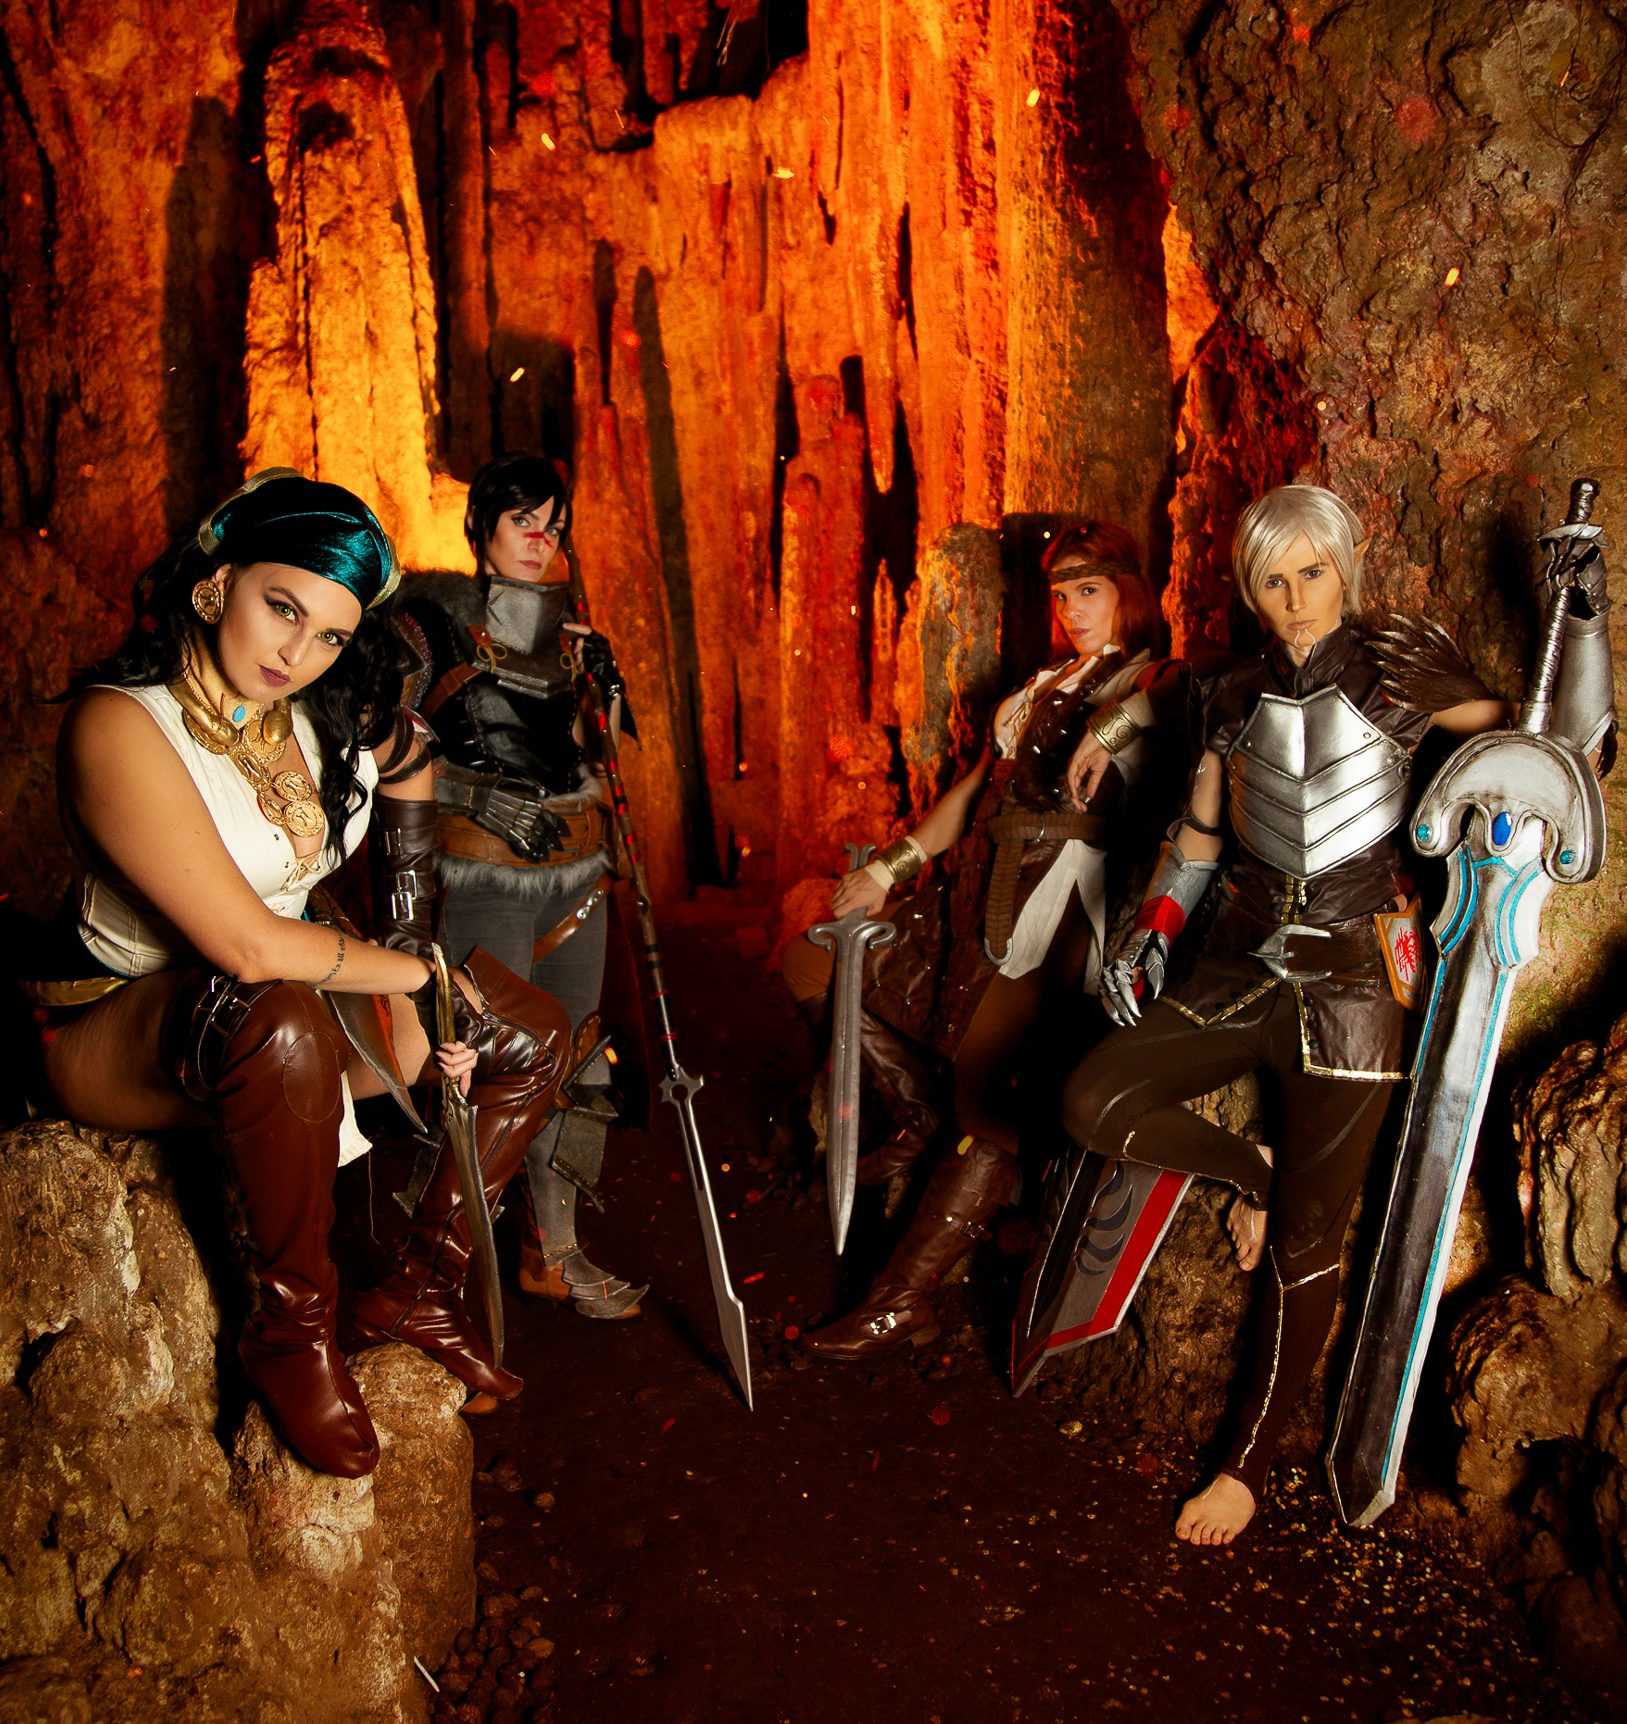 [PHOTOSHOOT][DRAGON AGE] Dragon Age II party